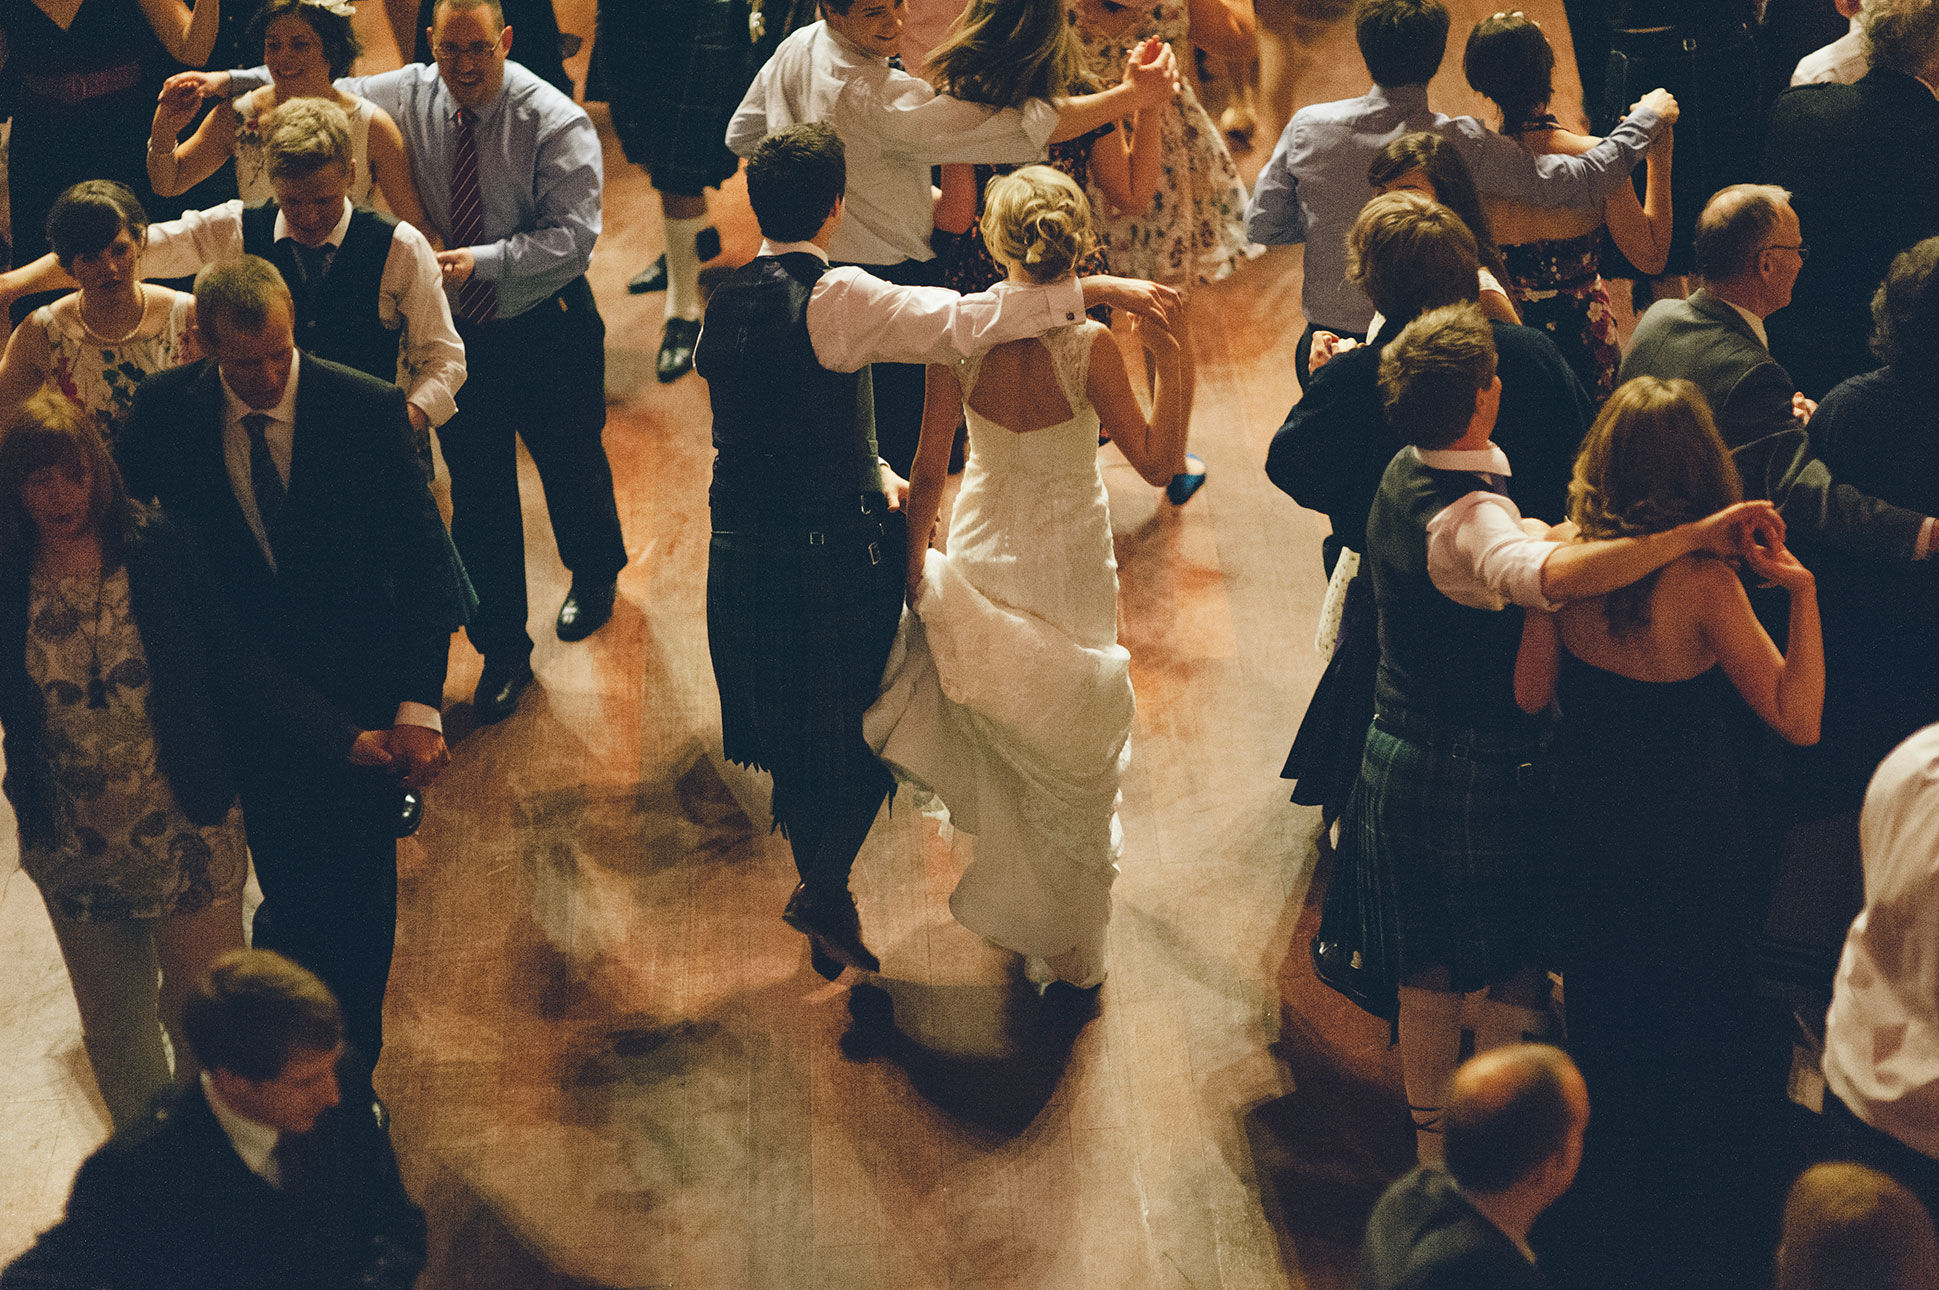 WEDDINGS - Nothing brings people together like a Scottish ceilidh.